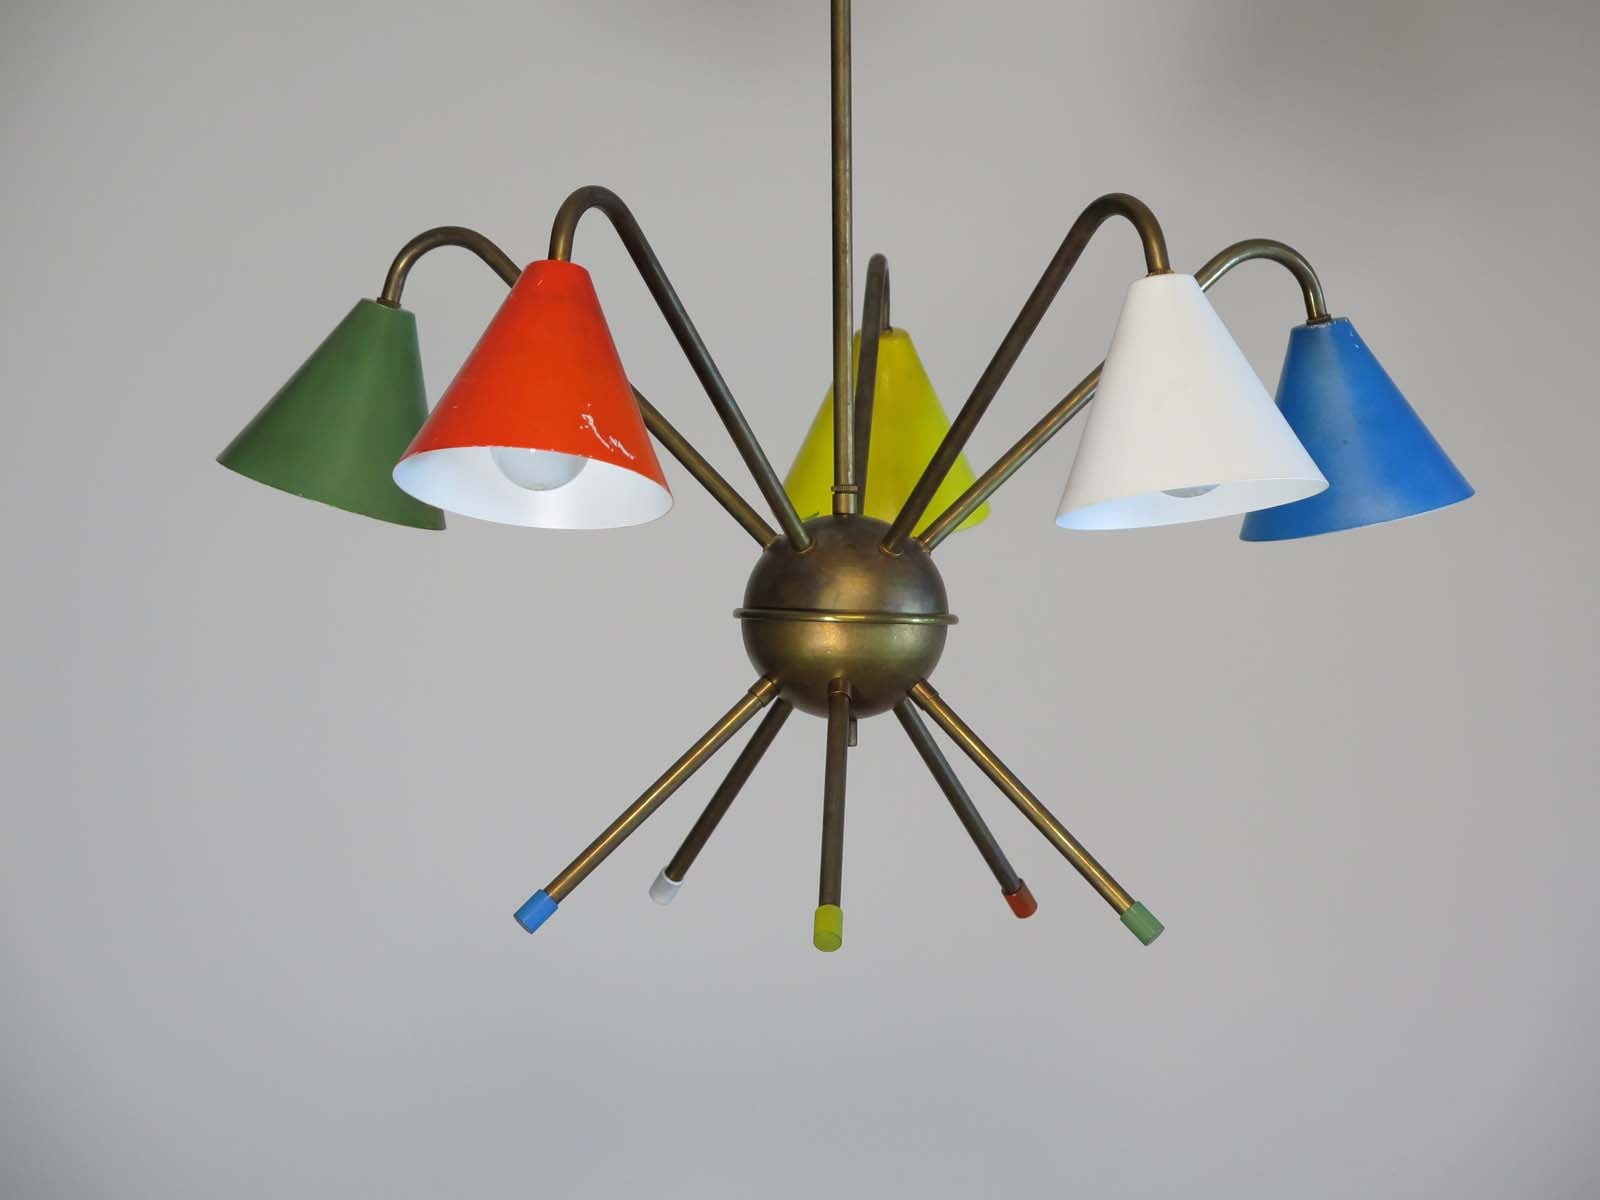 1950s italian atomic chandelier in the style of angelo lelli five 1950s italian atomic chandelier in the style of angelo lelli five cups for sale at 1stdibs arubaitofo Image collections